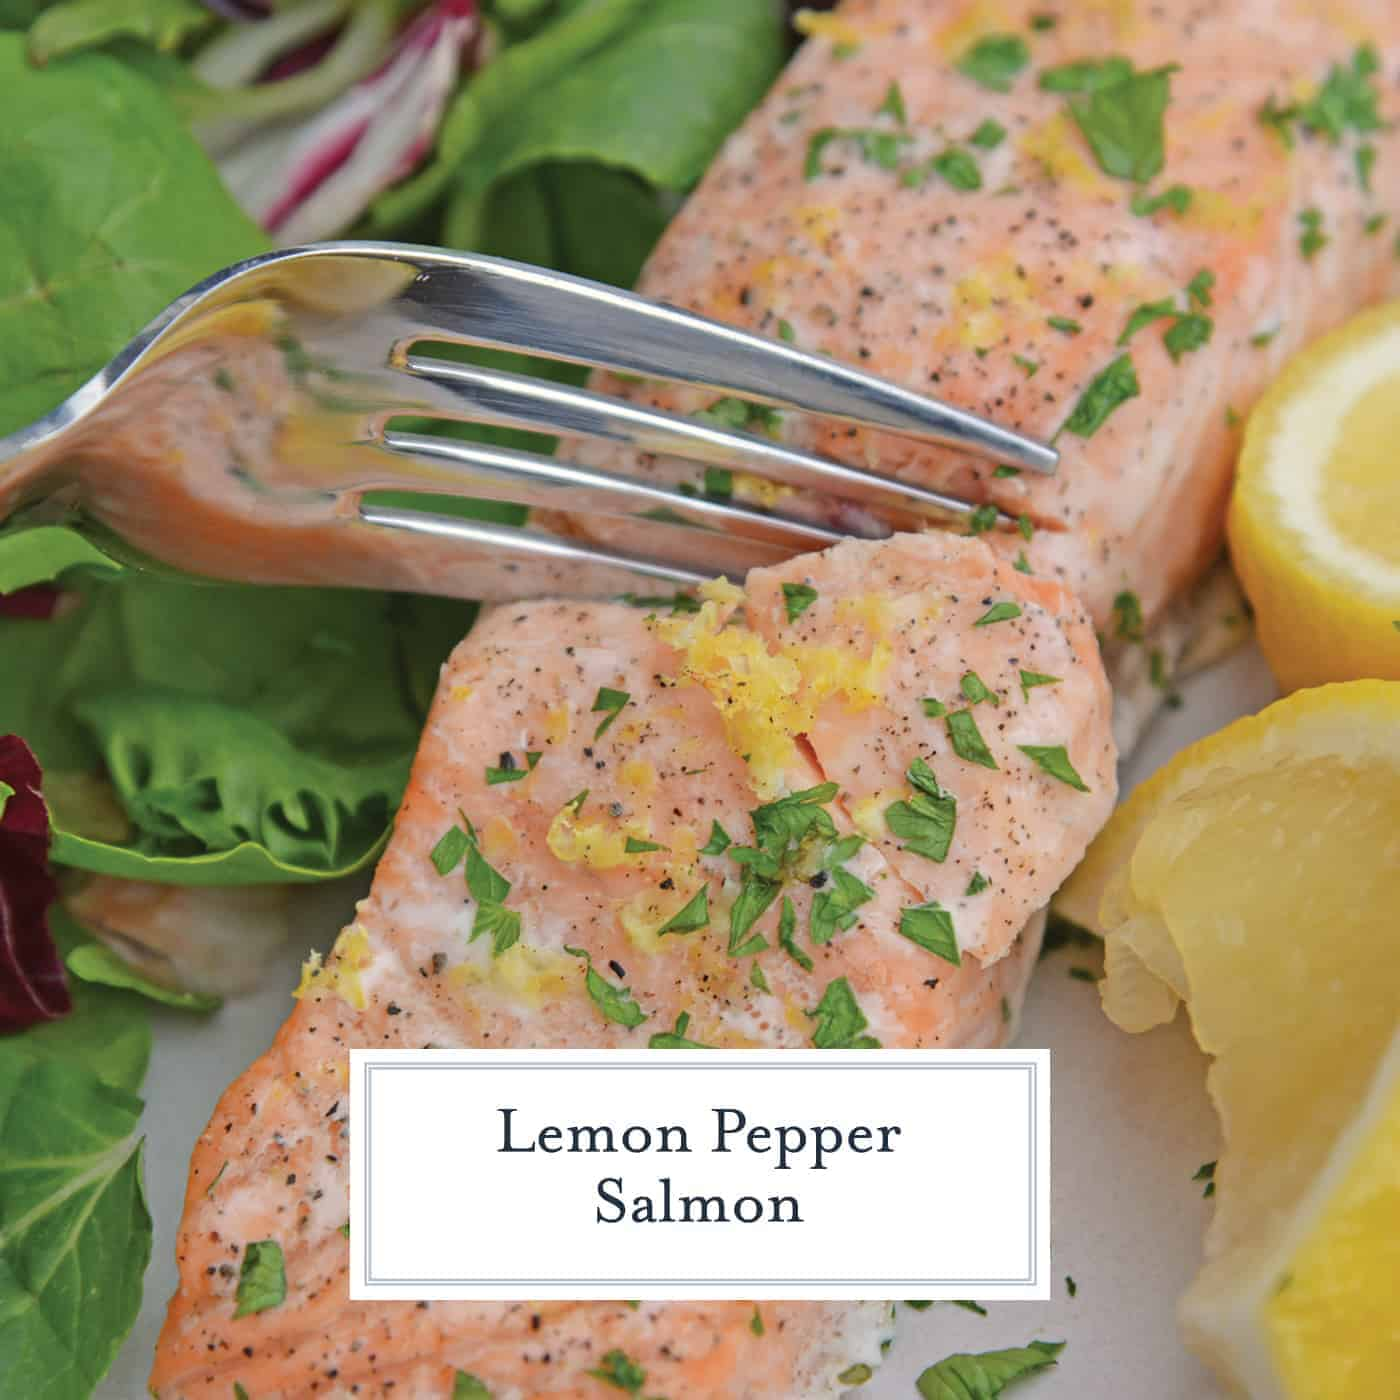 Lemon Pepper Salmon is a classic healthy salmon recipe. Made with fresh ingredients, it's also an easy salmon recipe that everyone will love! #lemonpeppersalmon #easysalmonrecipes #healthysalmonrecipes www.savoryexperiments.com